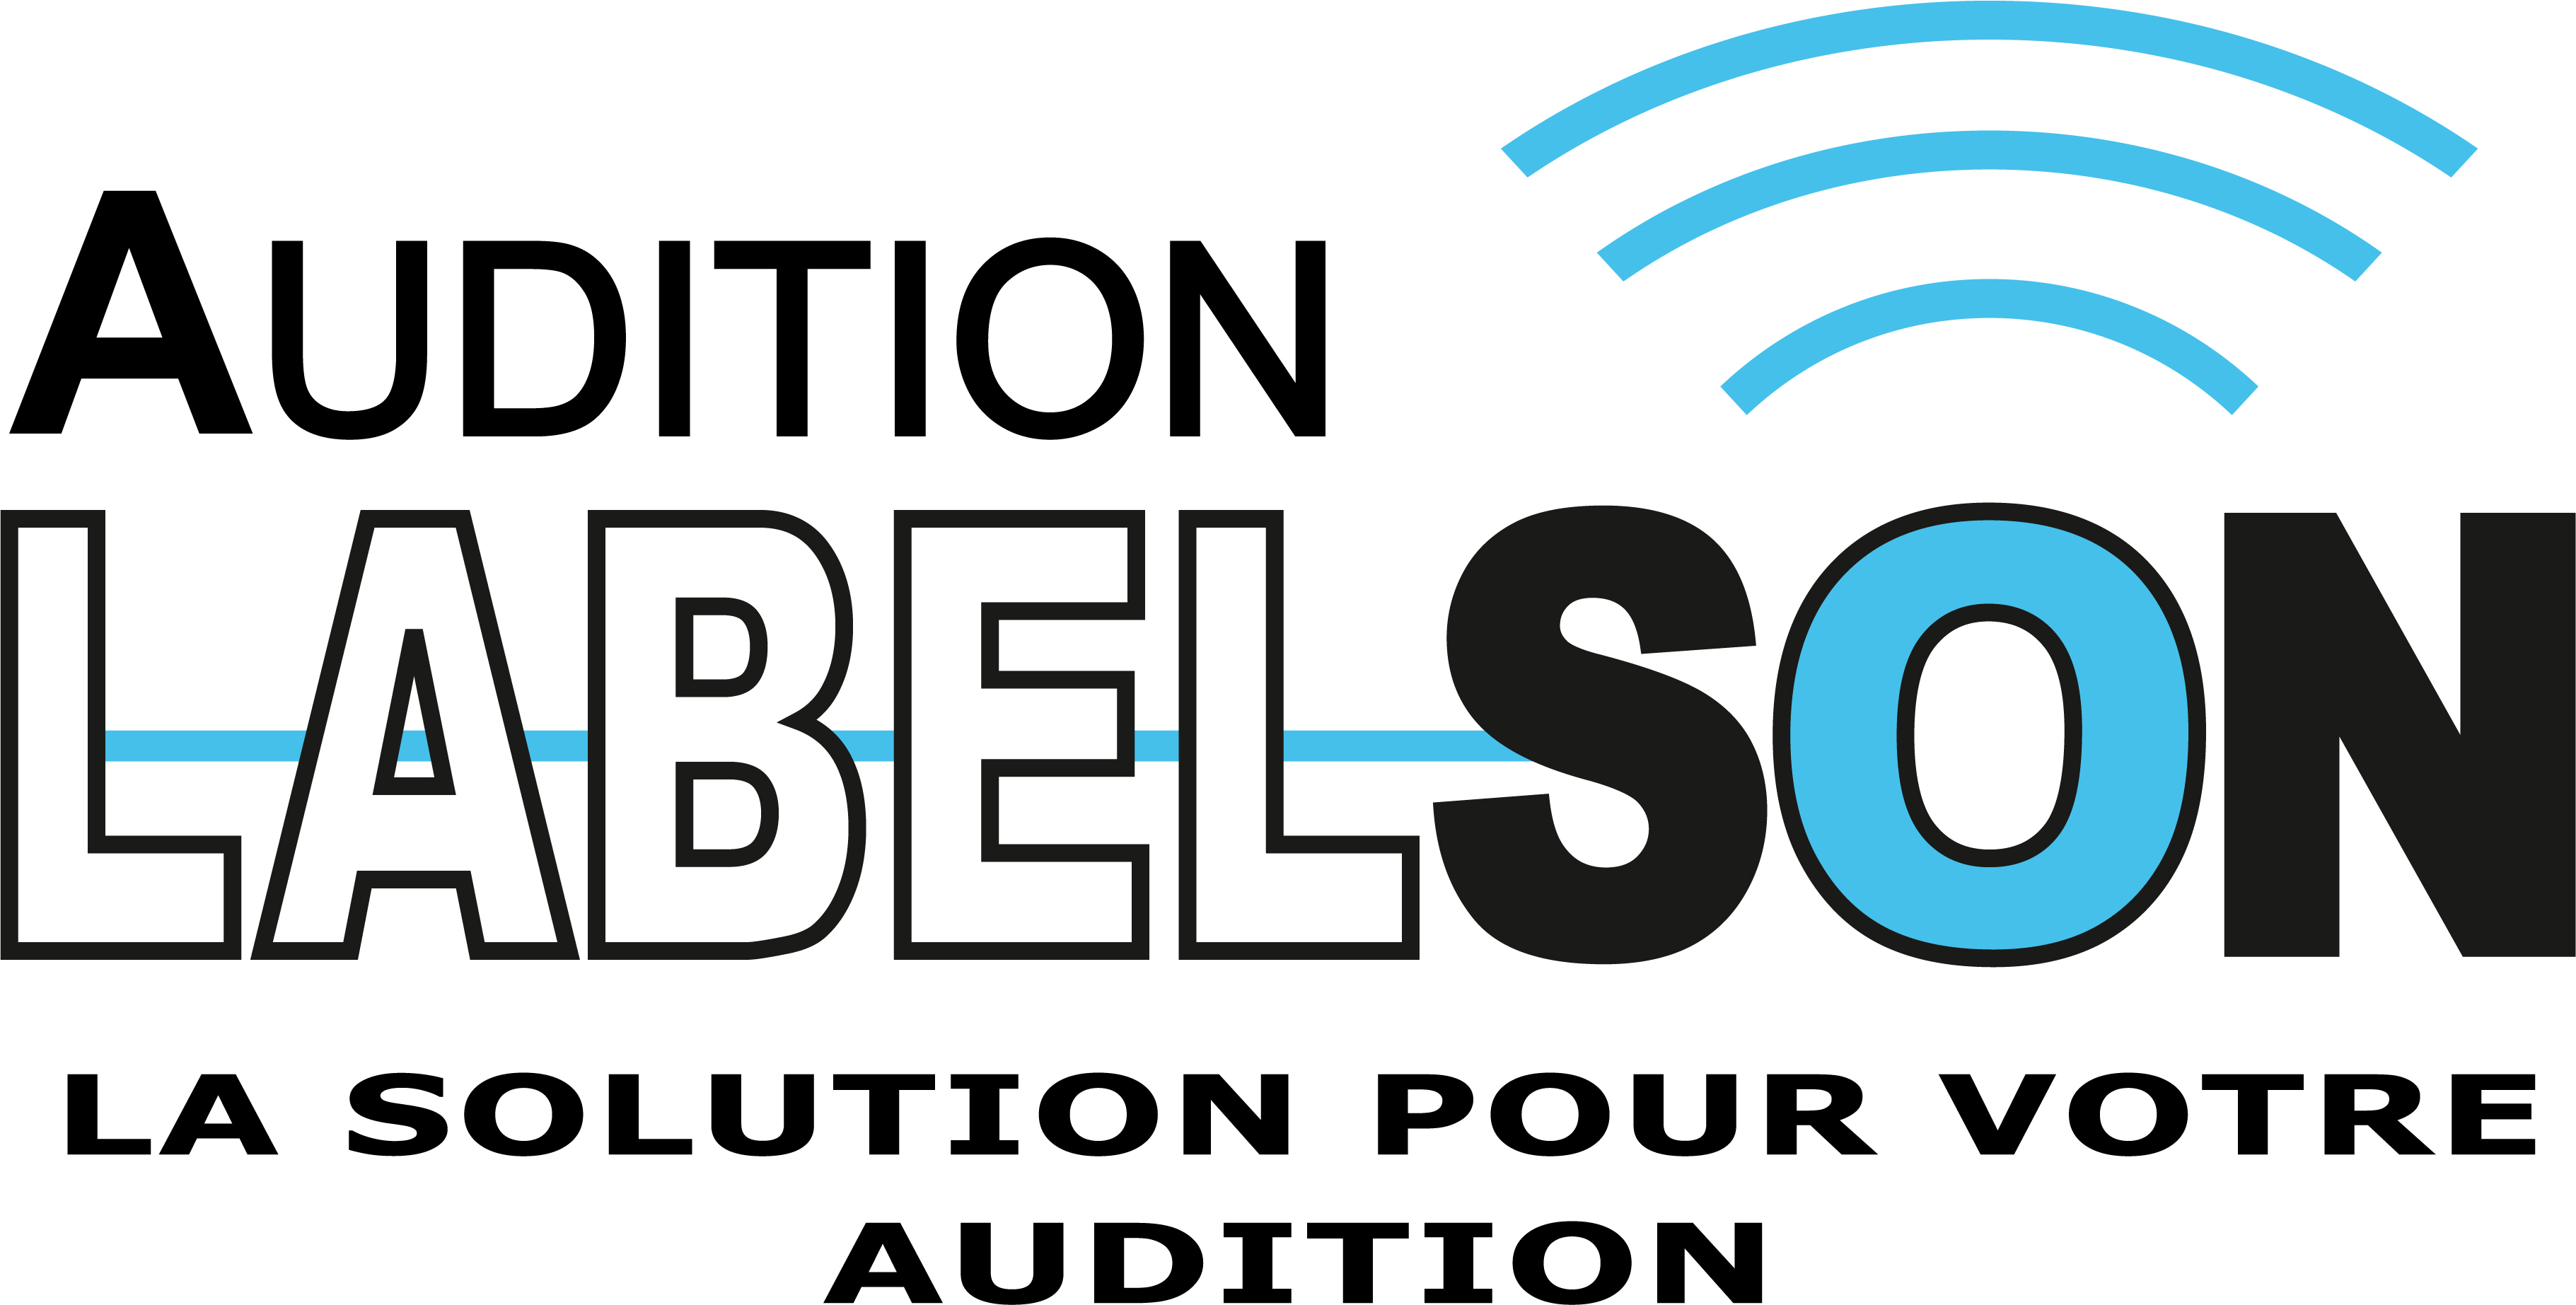 Audition Labelson Bearn